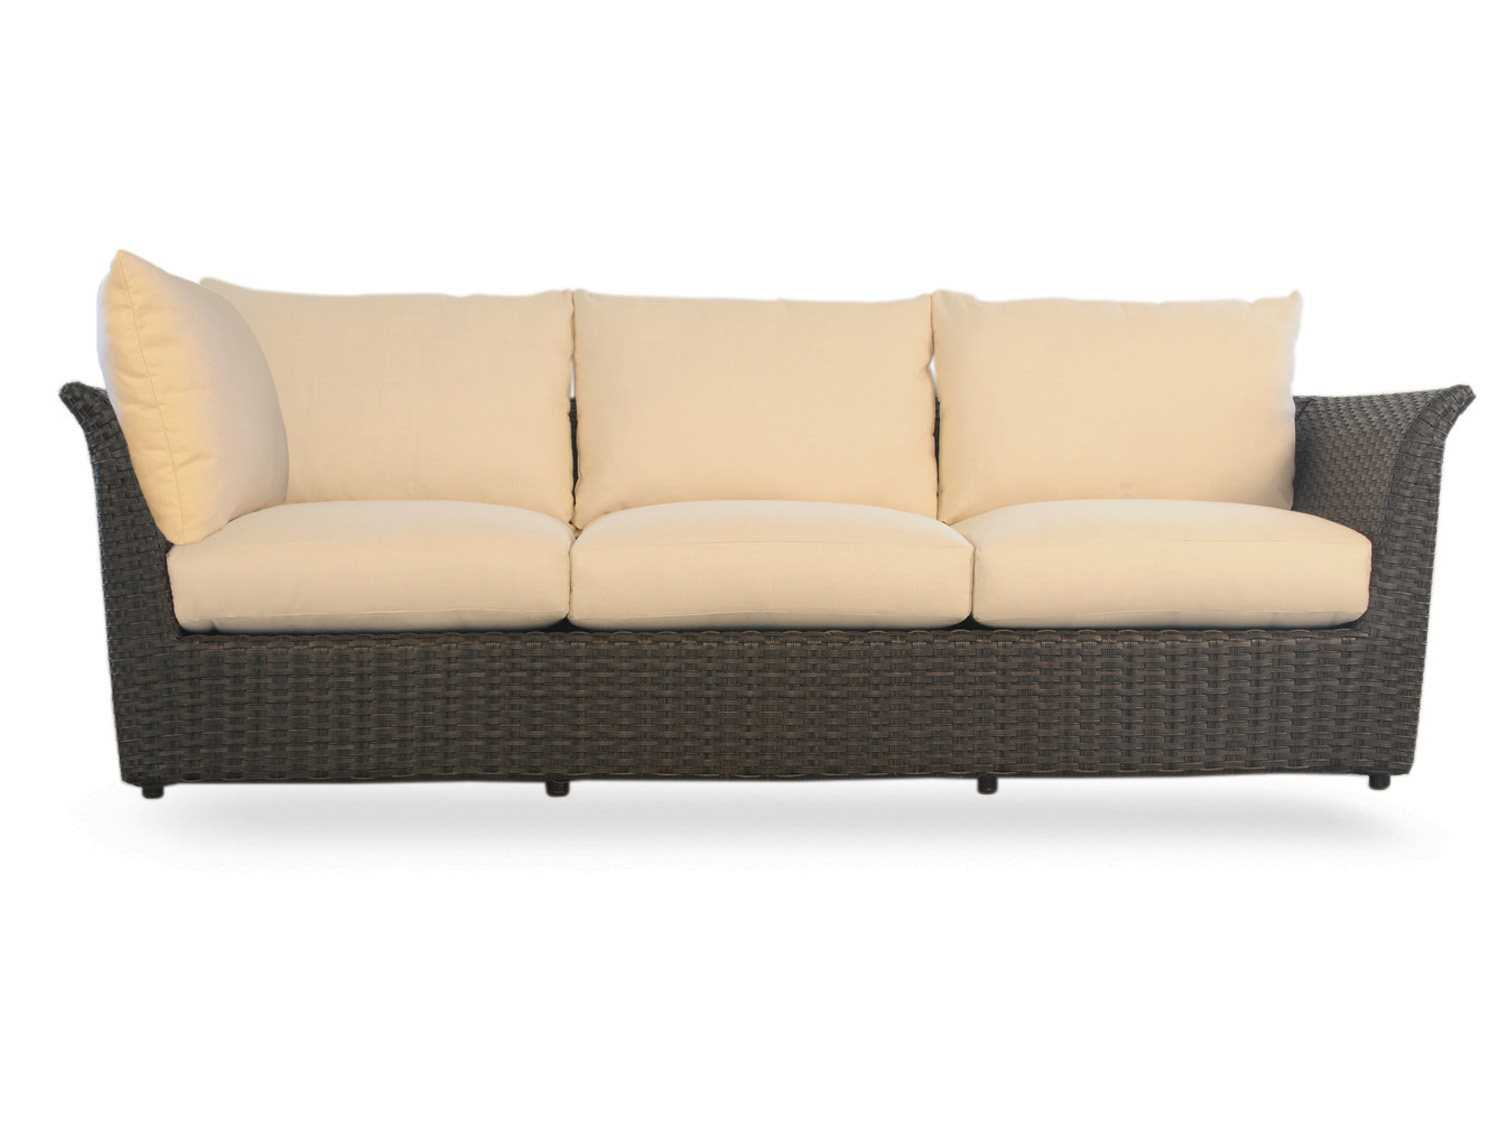 replacement cushions for sofa backs sofas and chairs new orleans lloyd flanders flair cushion sectional